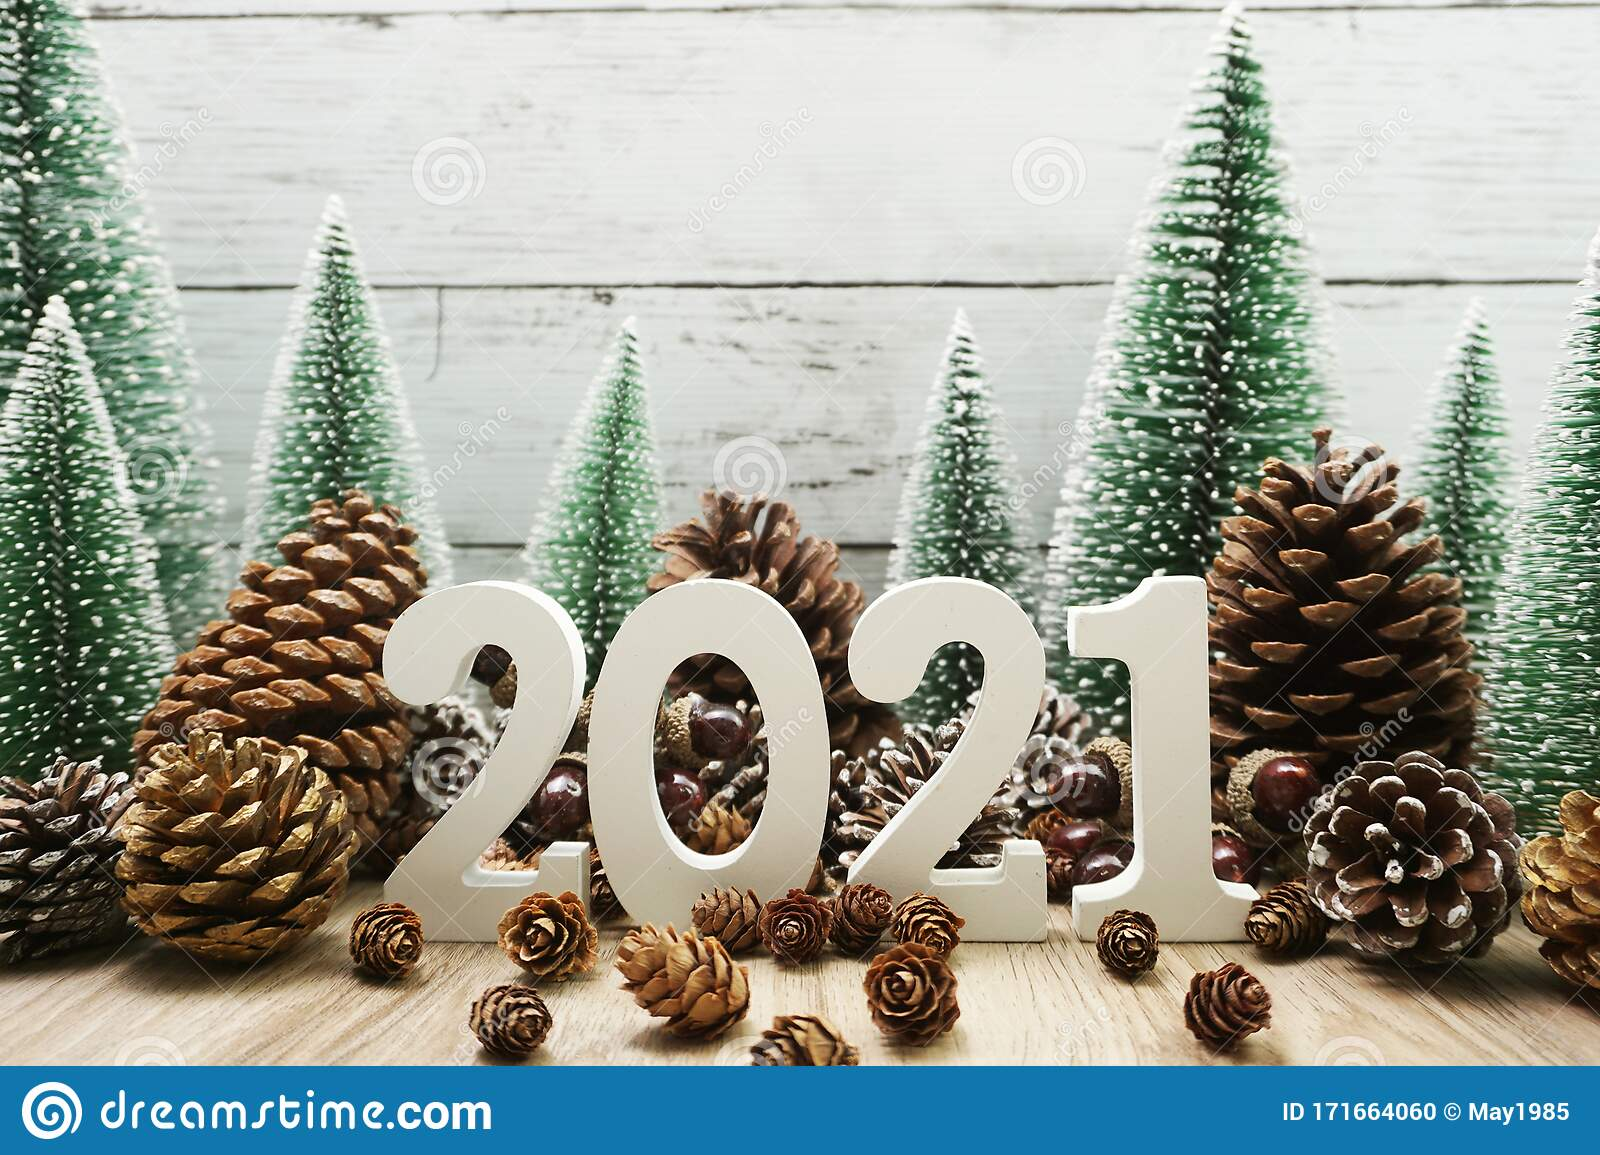 Christmas Tree Recolection 2021 2021 Happy New Year Festive Background With Christmas Tree And Pine Cone Decoration On Wooden Background Stock Photo Image Of Creative Celebrate 171664060